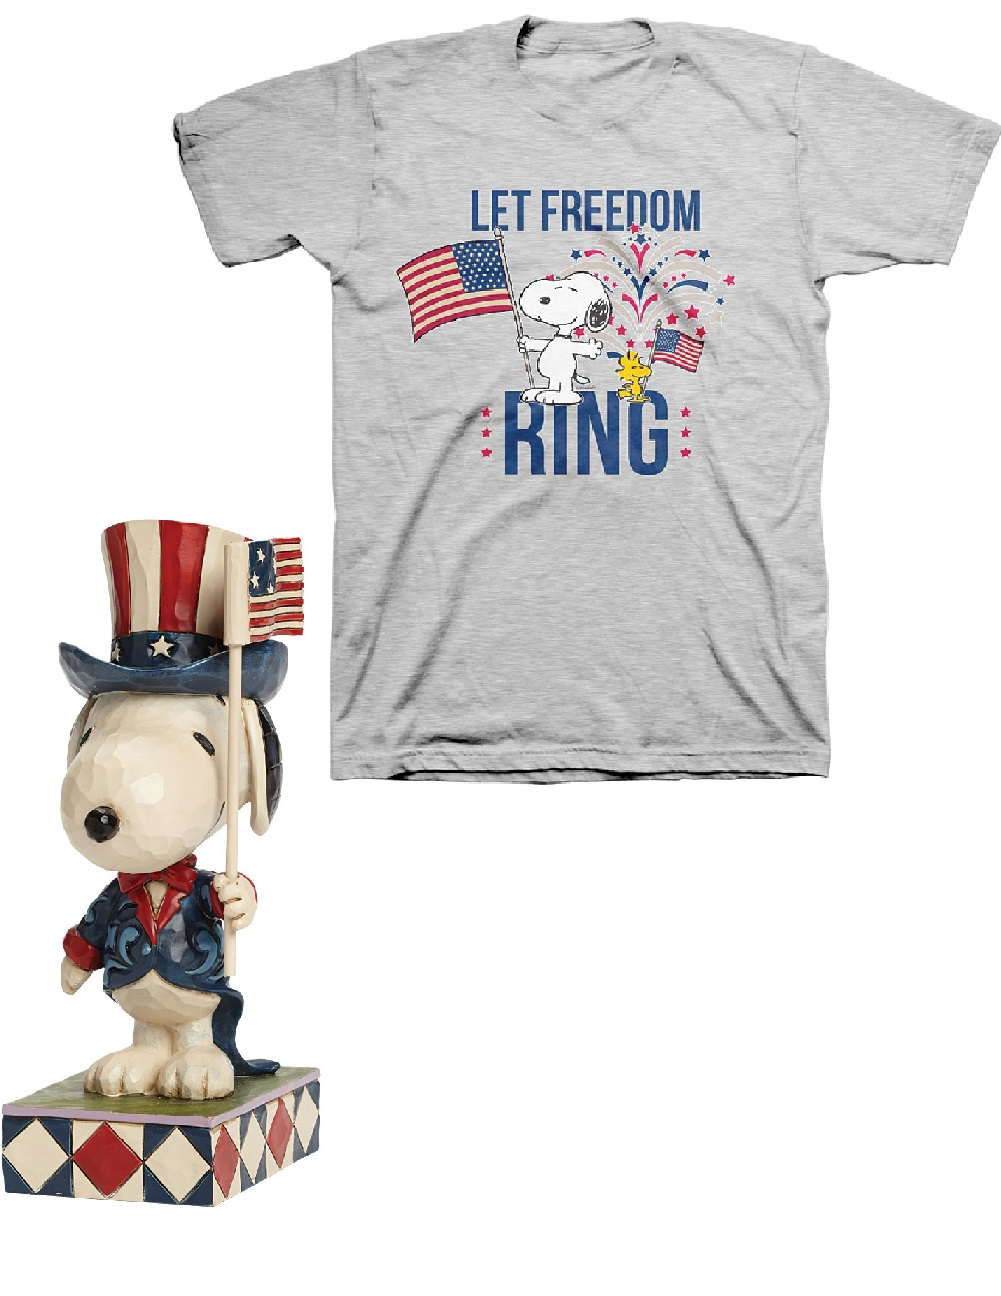 Peanuts By Schulz Let Freedom Ring - PEANUTS Jim Shore Patriotic Snoopy Figure and Gray Tee XXL